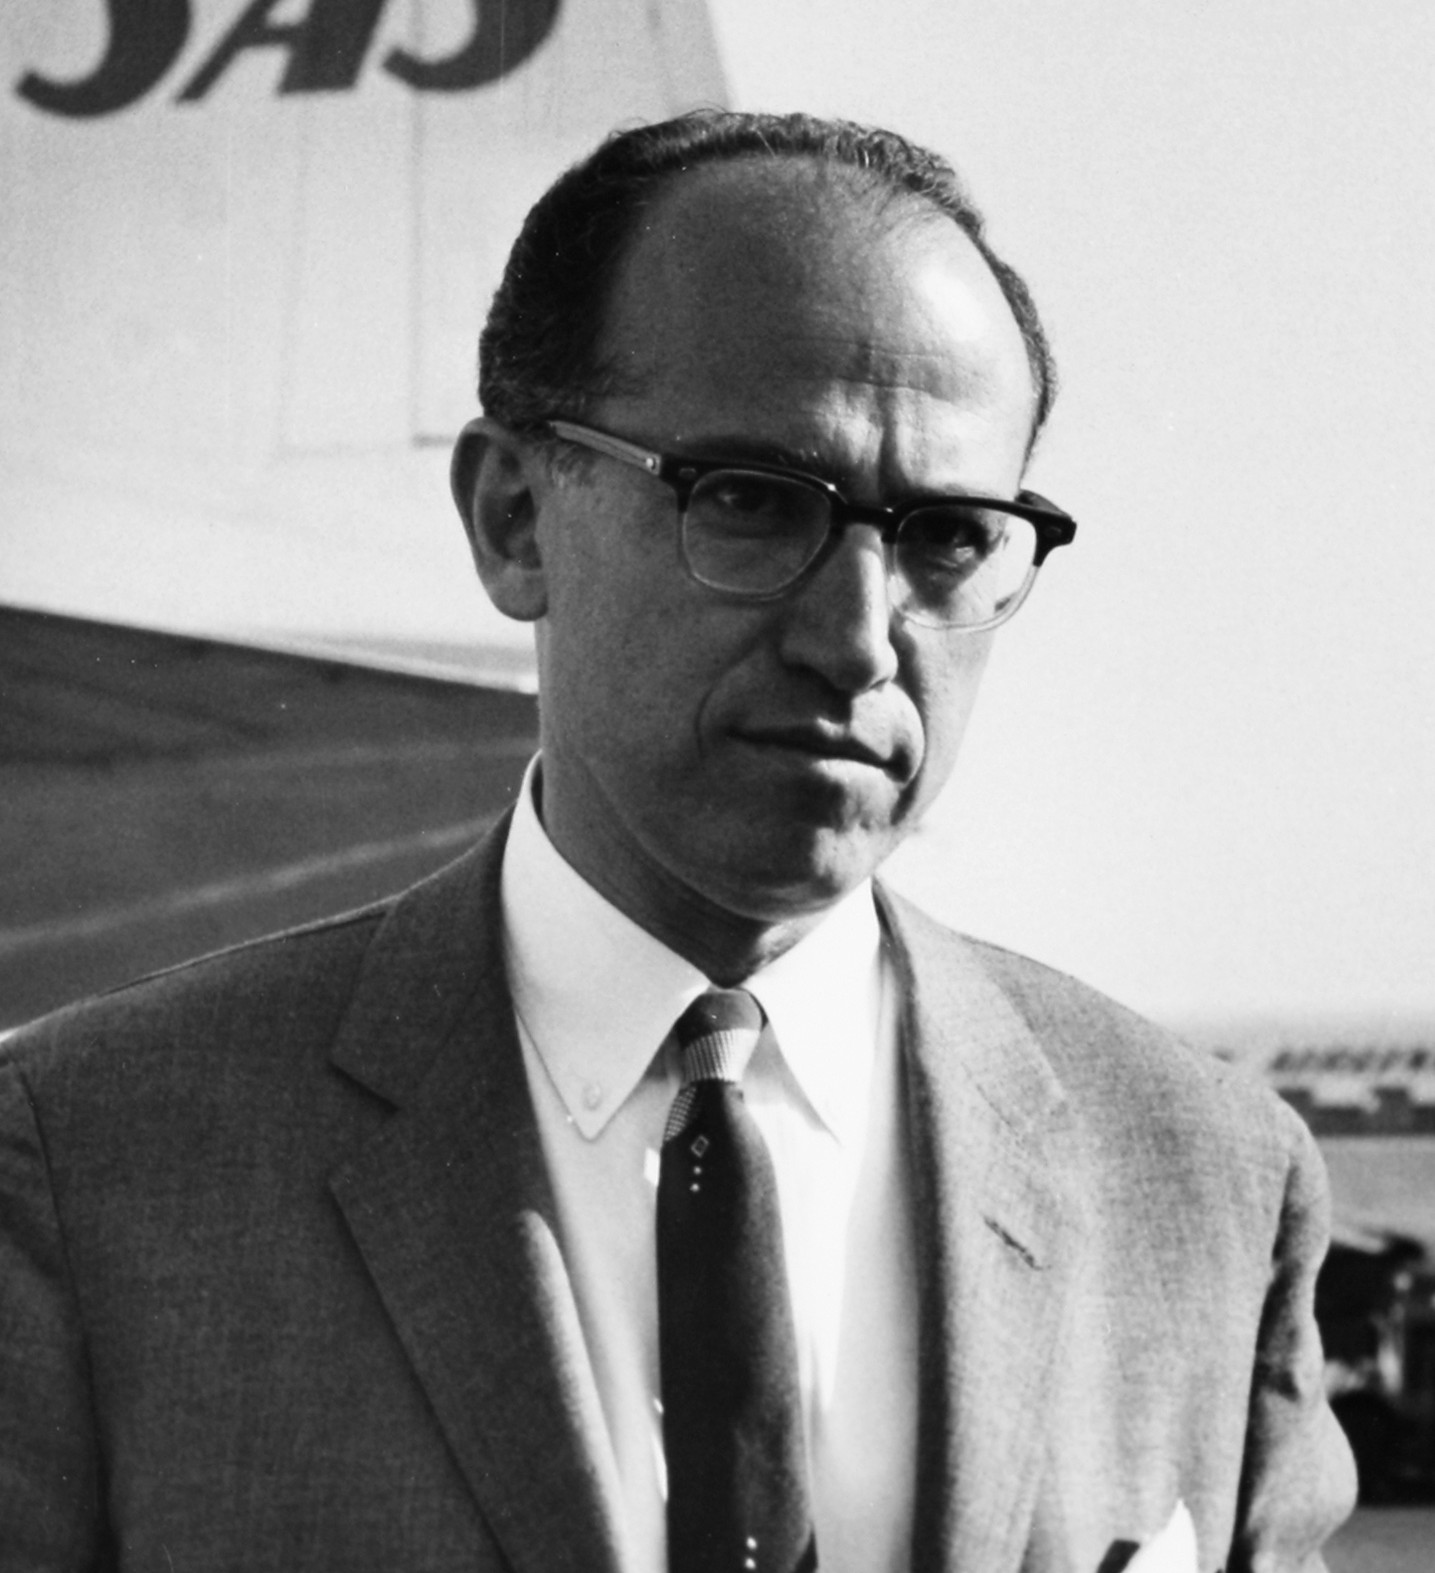 Jones Edward Salk